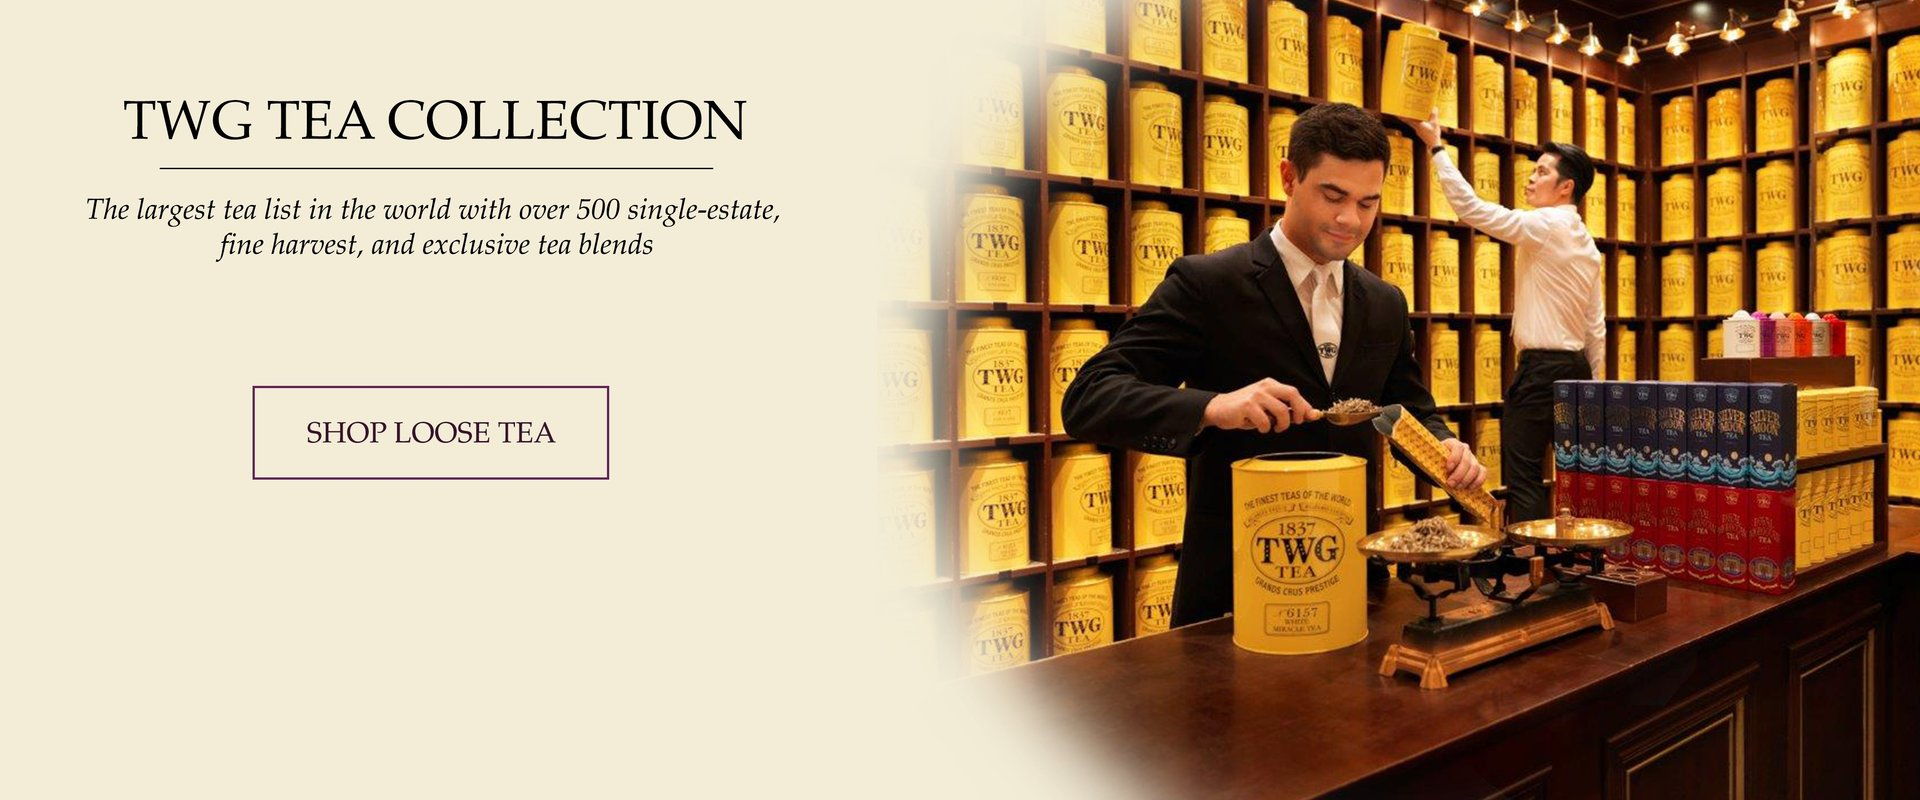 The first TWG Tea Salon & Boutique in Canada